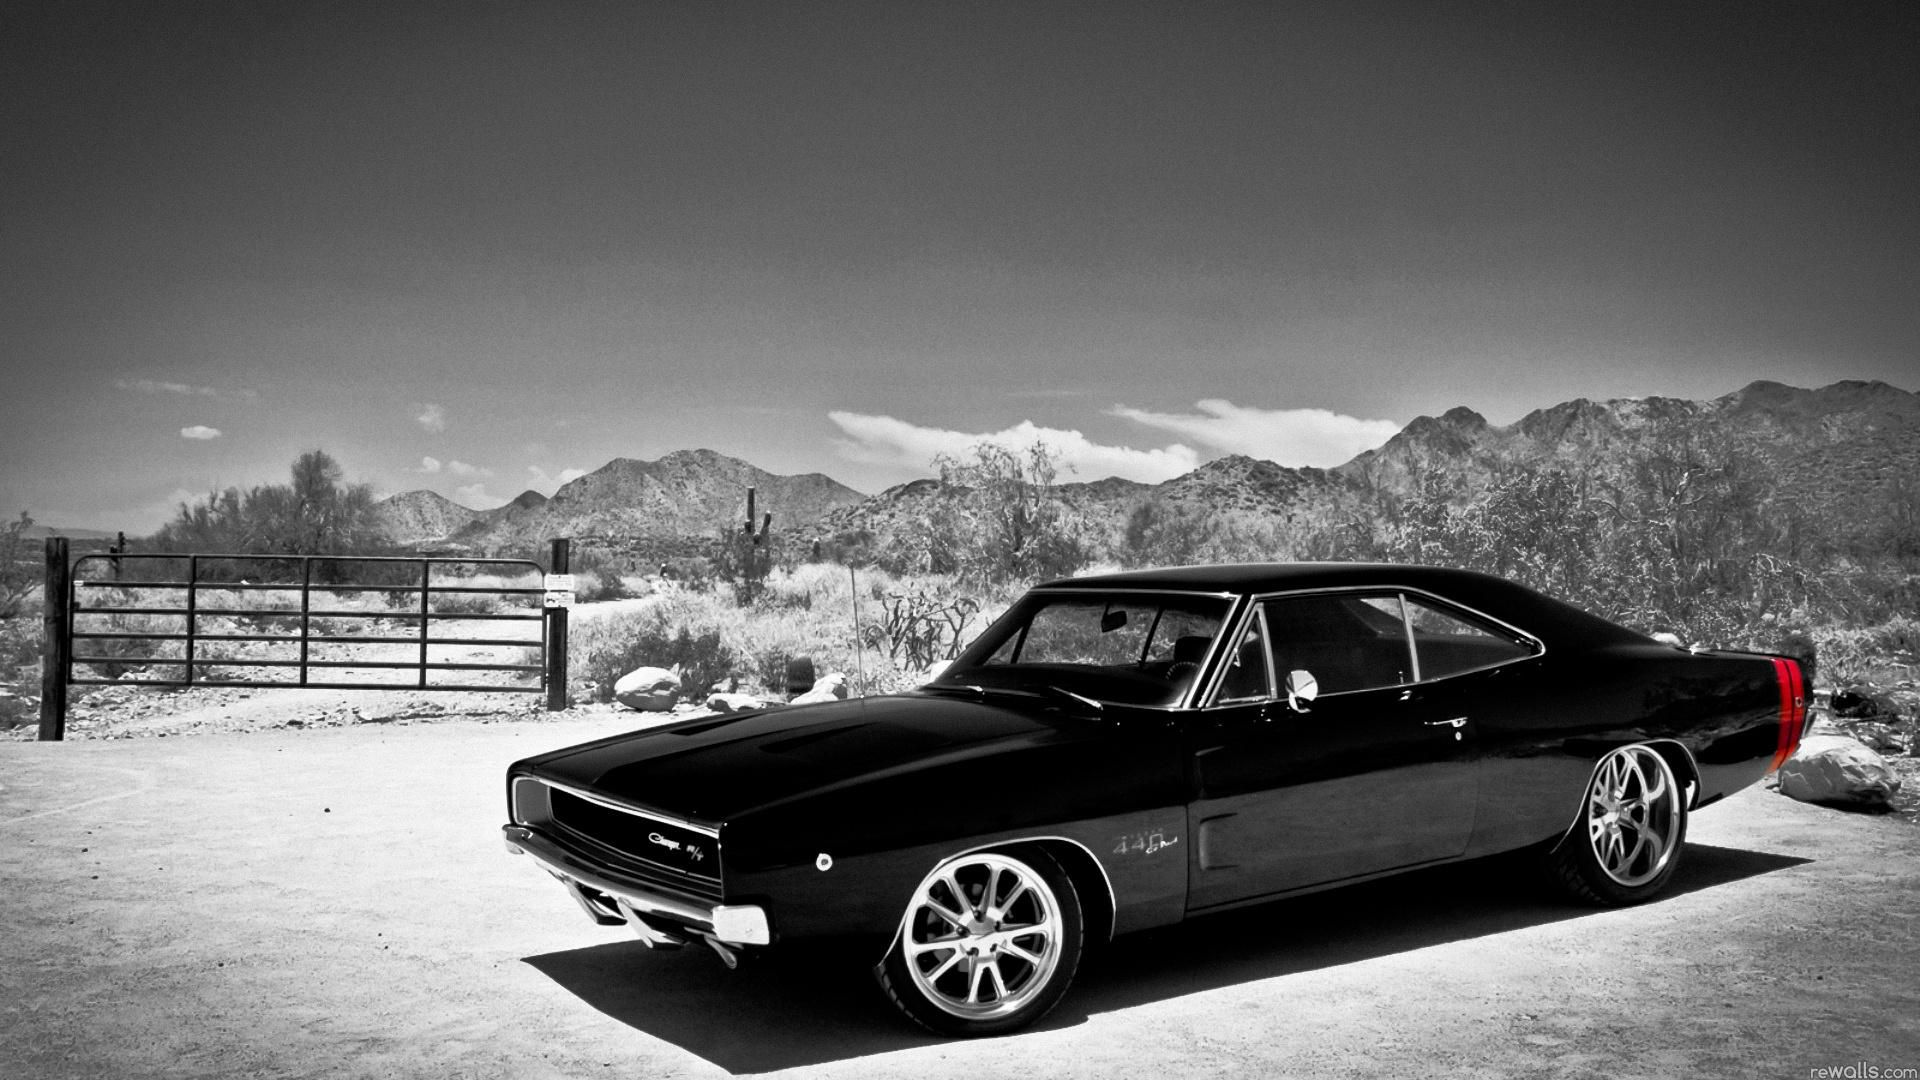 Muscle Cars Hd Wallpapers Old Muscle Cars Classic Cars Muscle Best Muscle Cars